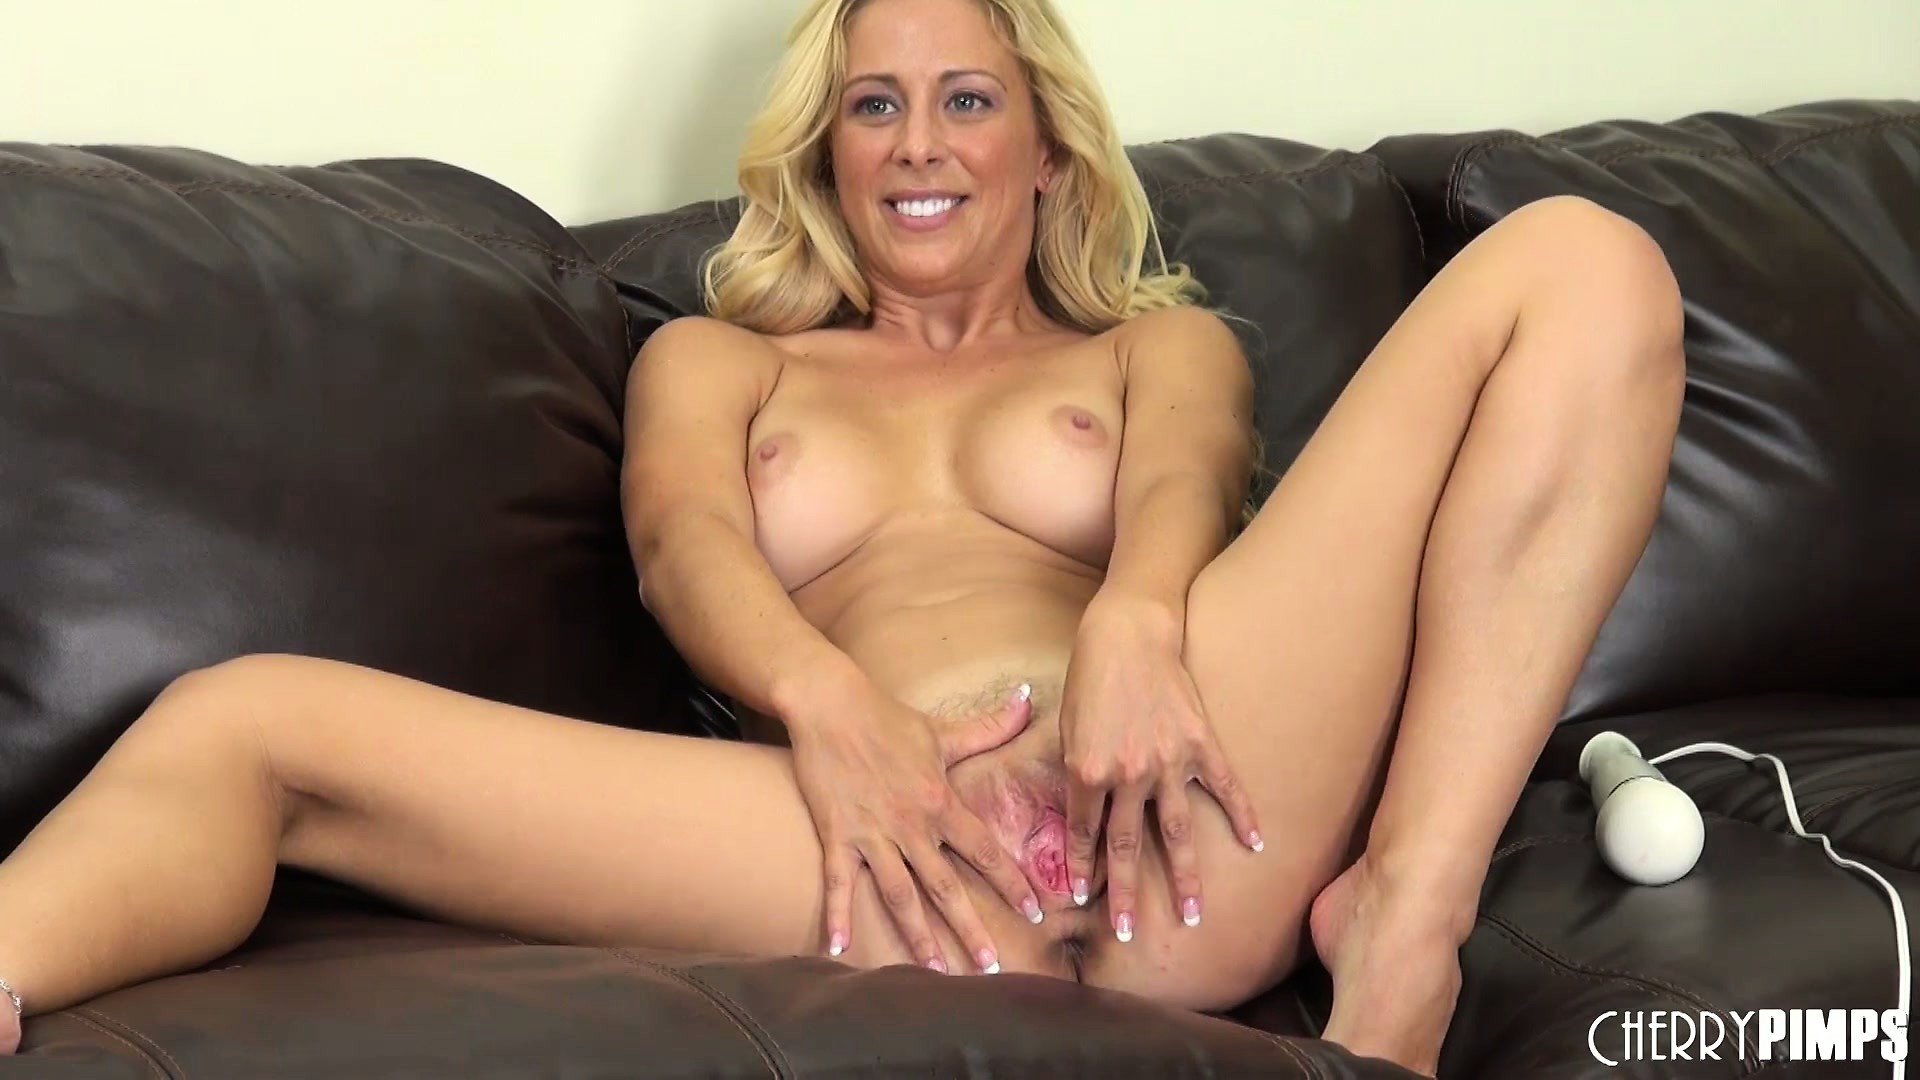 Porno Video of Cherie Deville Enjoys Using Her Vibrator On The Leather Couch